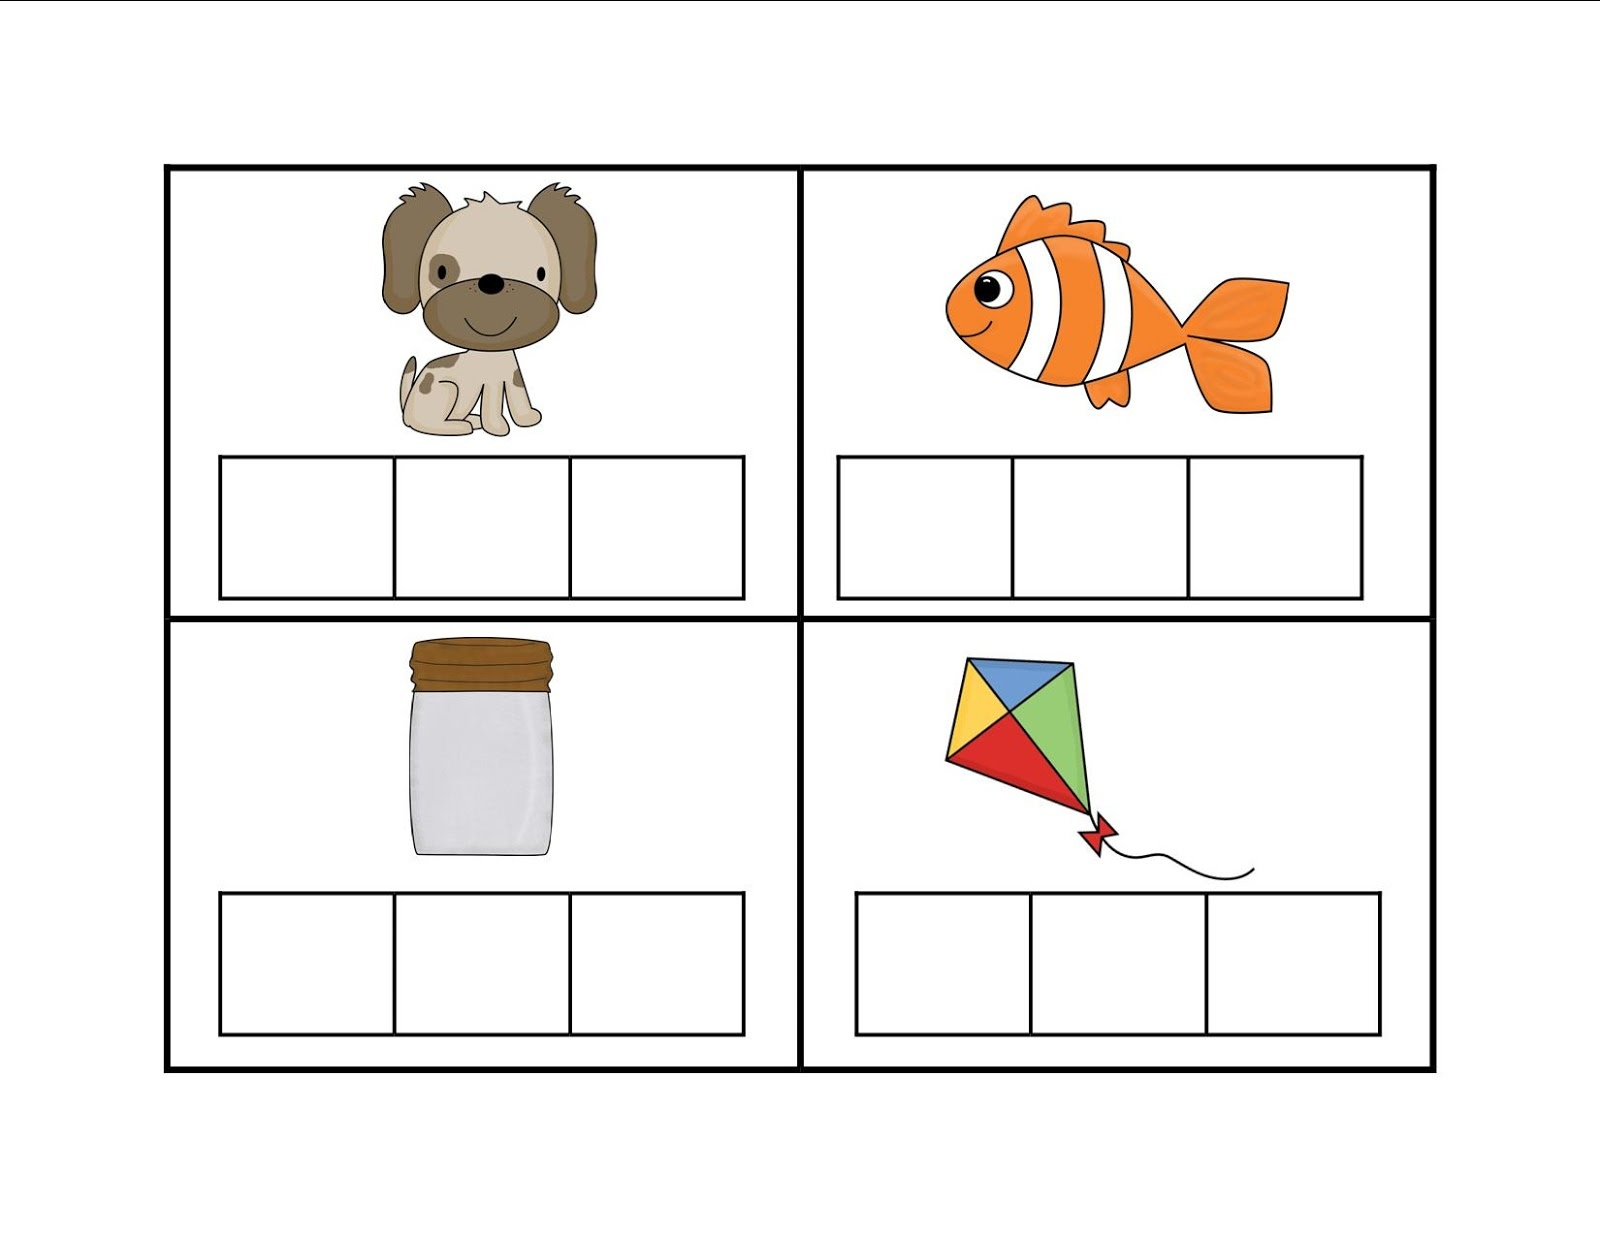 Elkonin Boxes Template. Elkonin Boxes Phonics Worksheets. Printable - Free Printable Elkonin Boxes